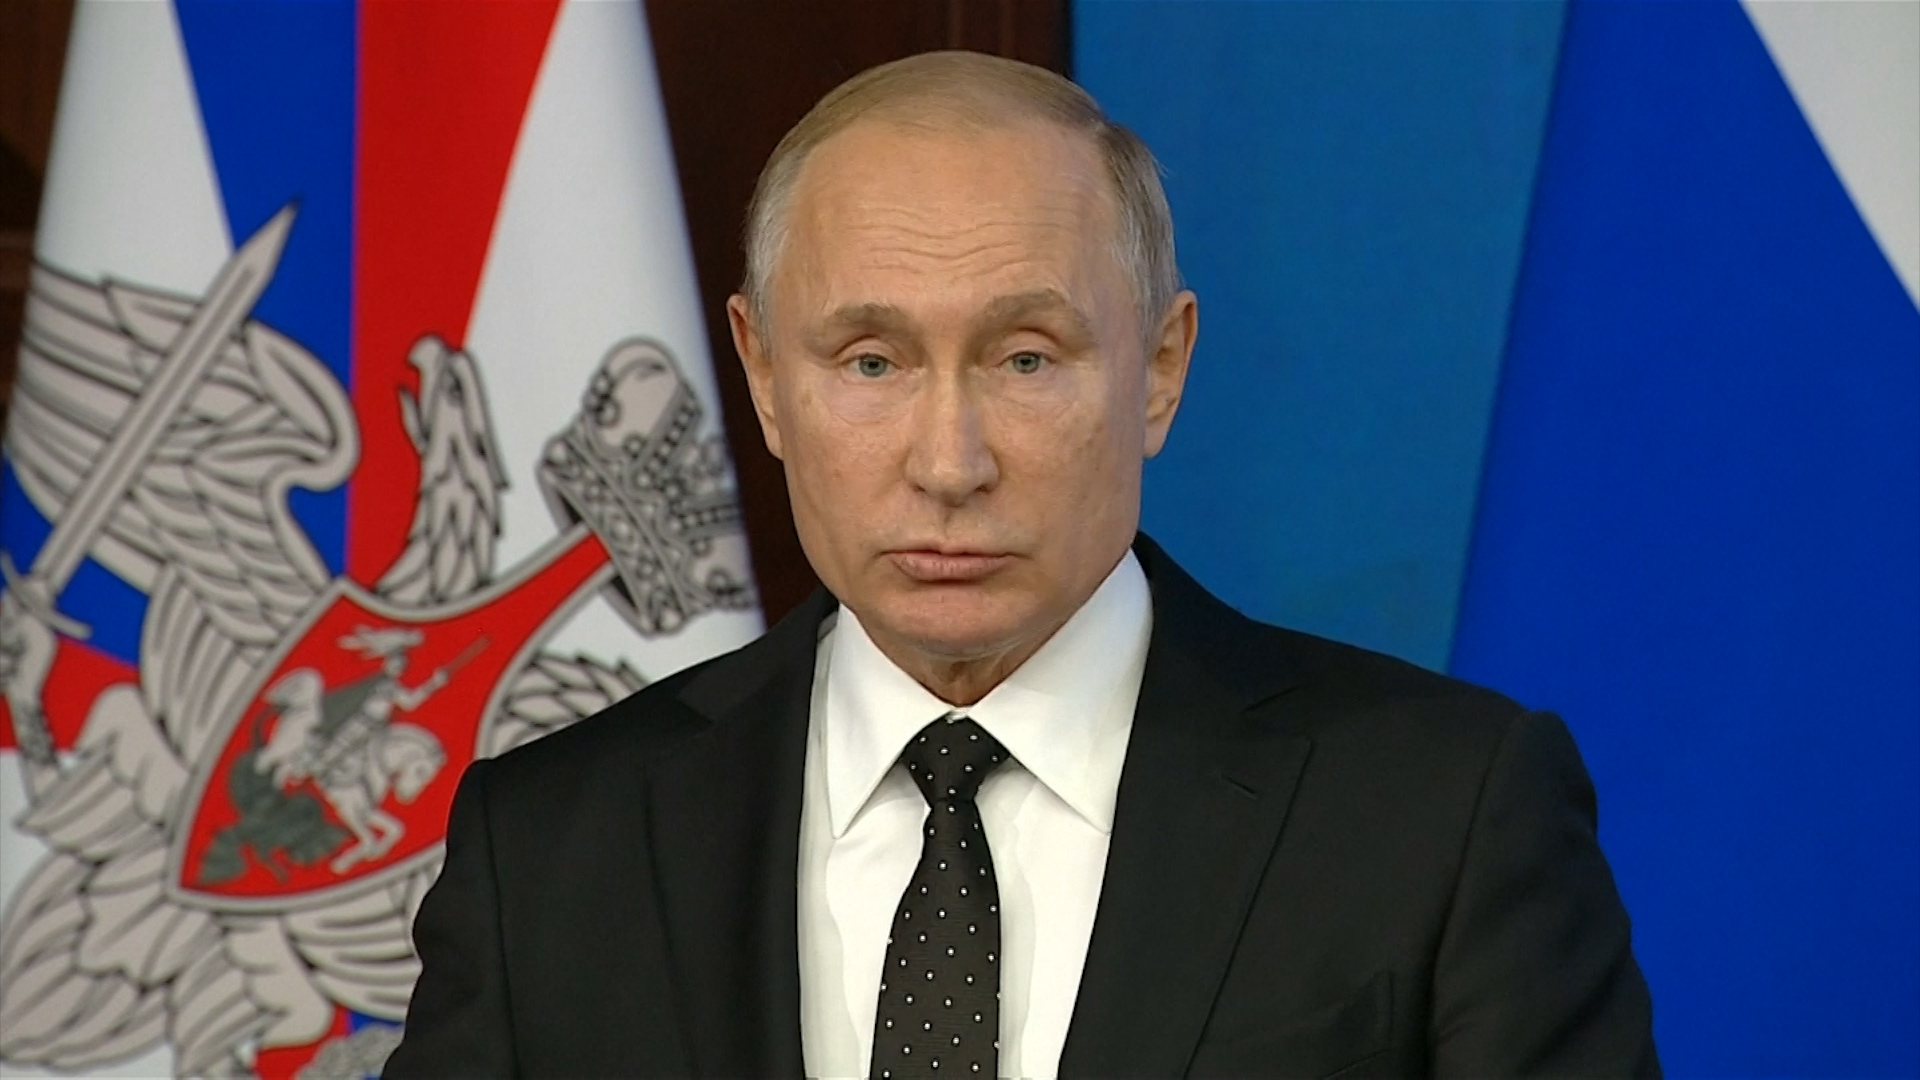 Russia's Putin says rap music should be controlled, not shut down